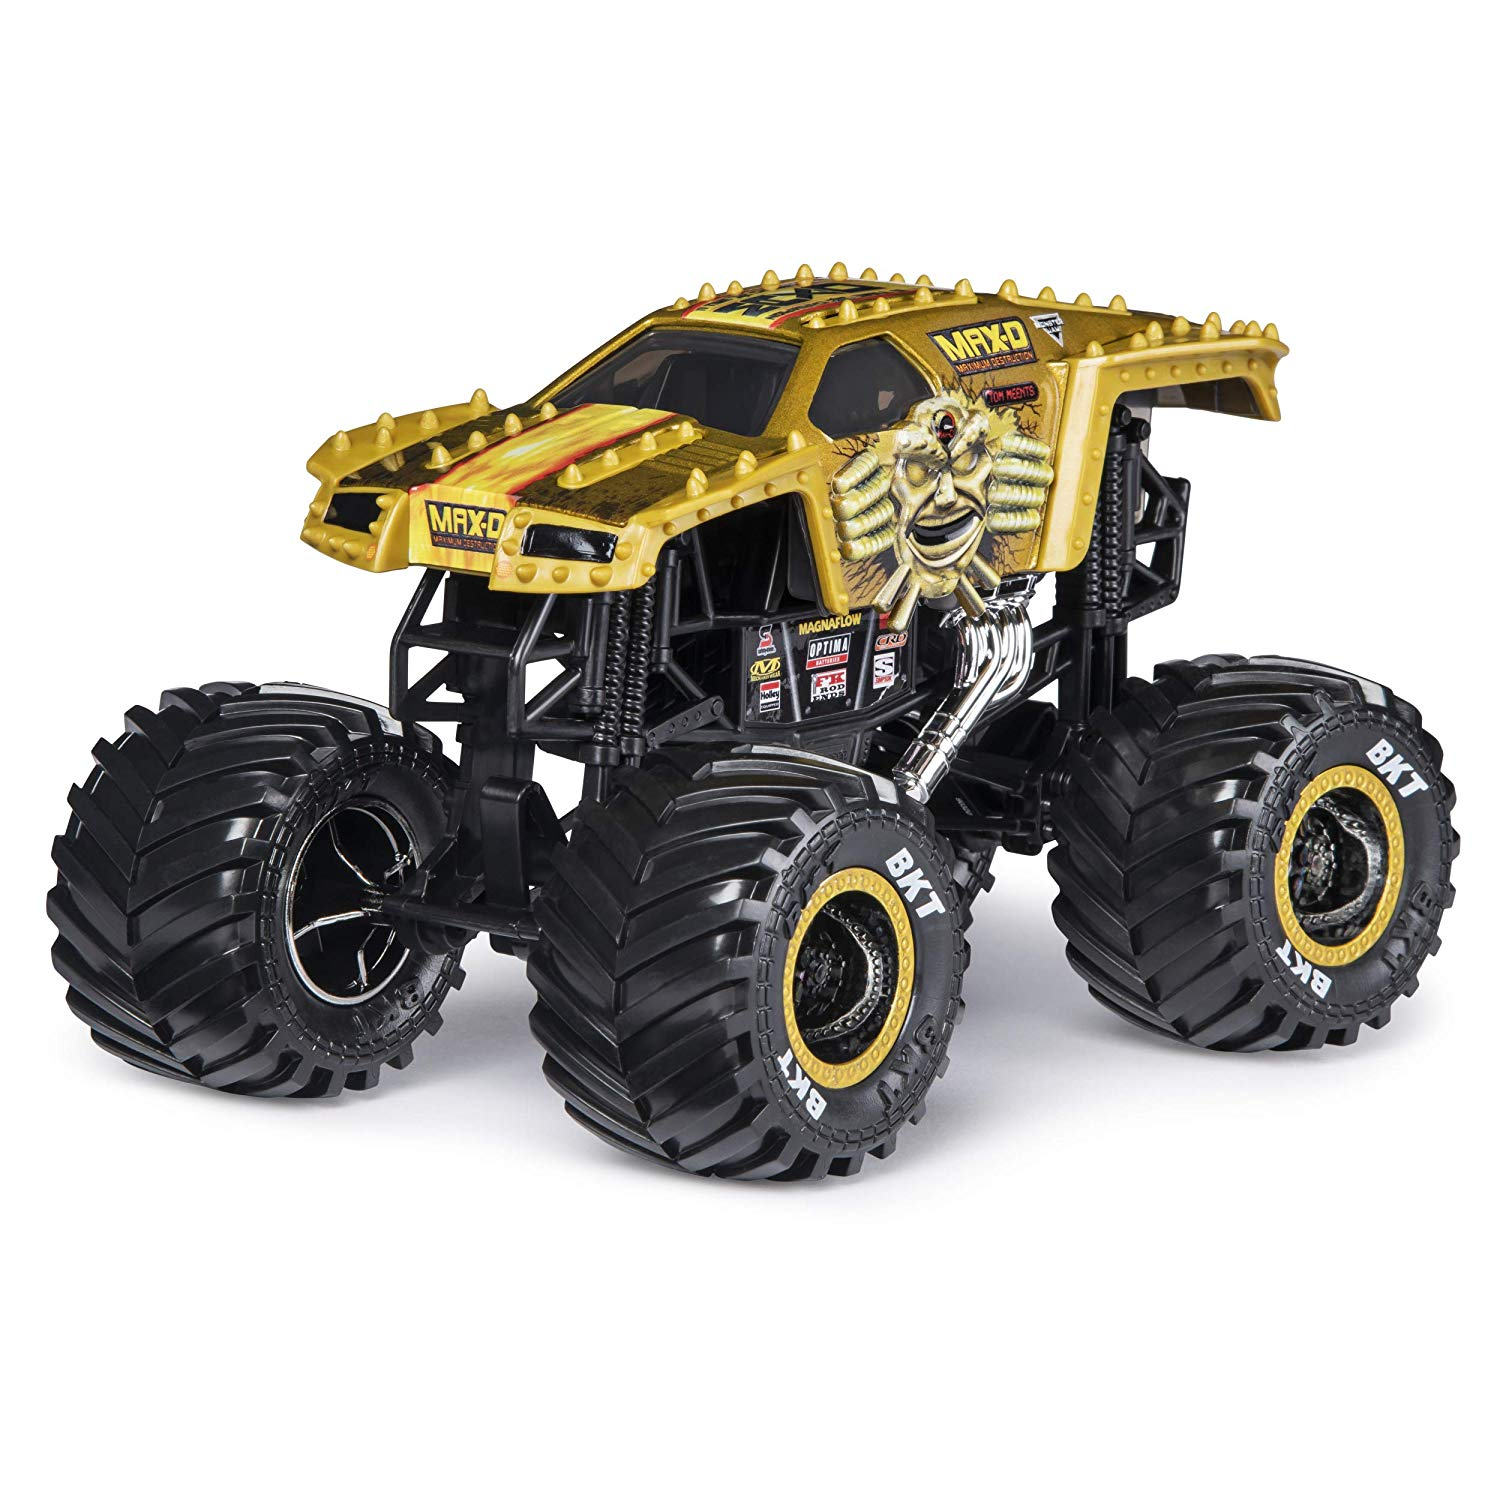 Monster Jam Die-Cast 1:24 Truck - Max-D (Gold)